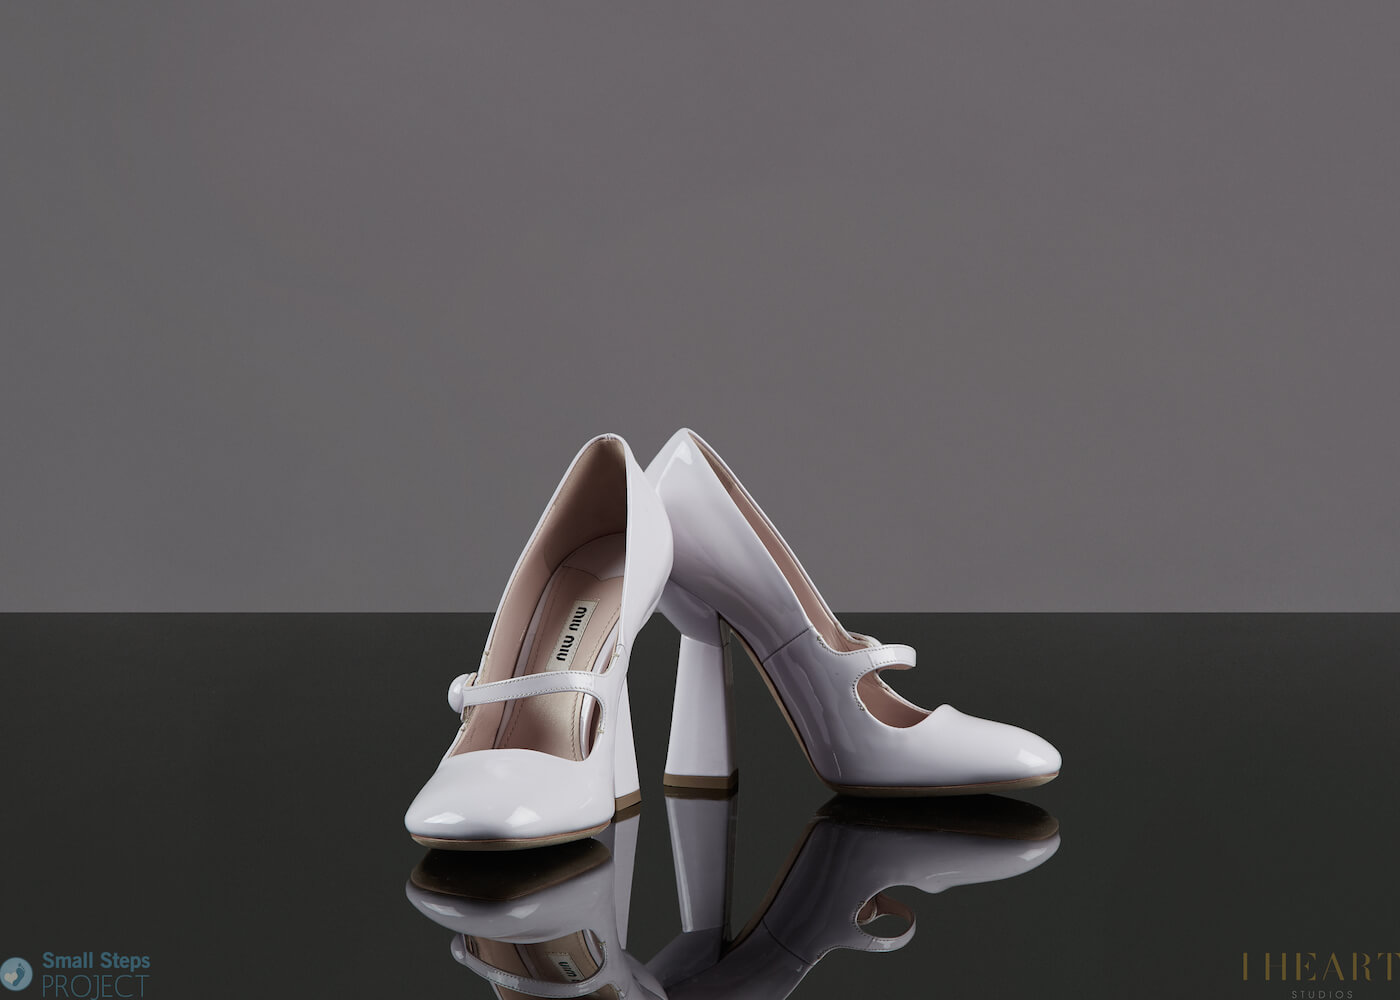 In 2014, Rachel donated a gorgeous pair of white Miu Miu shoes.